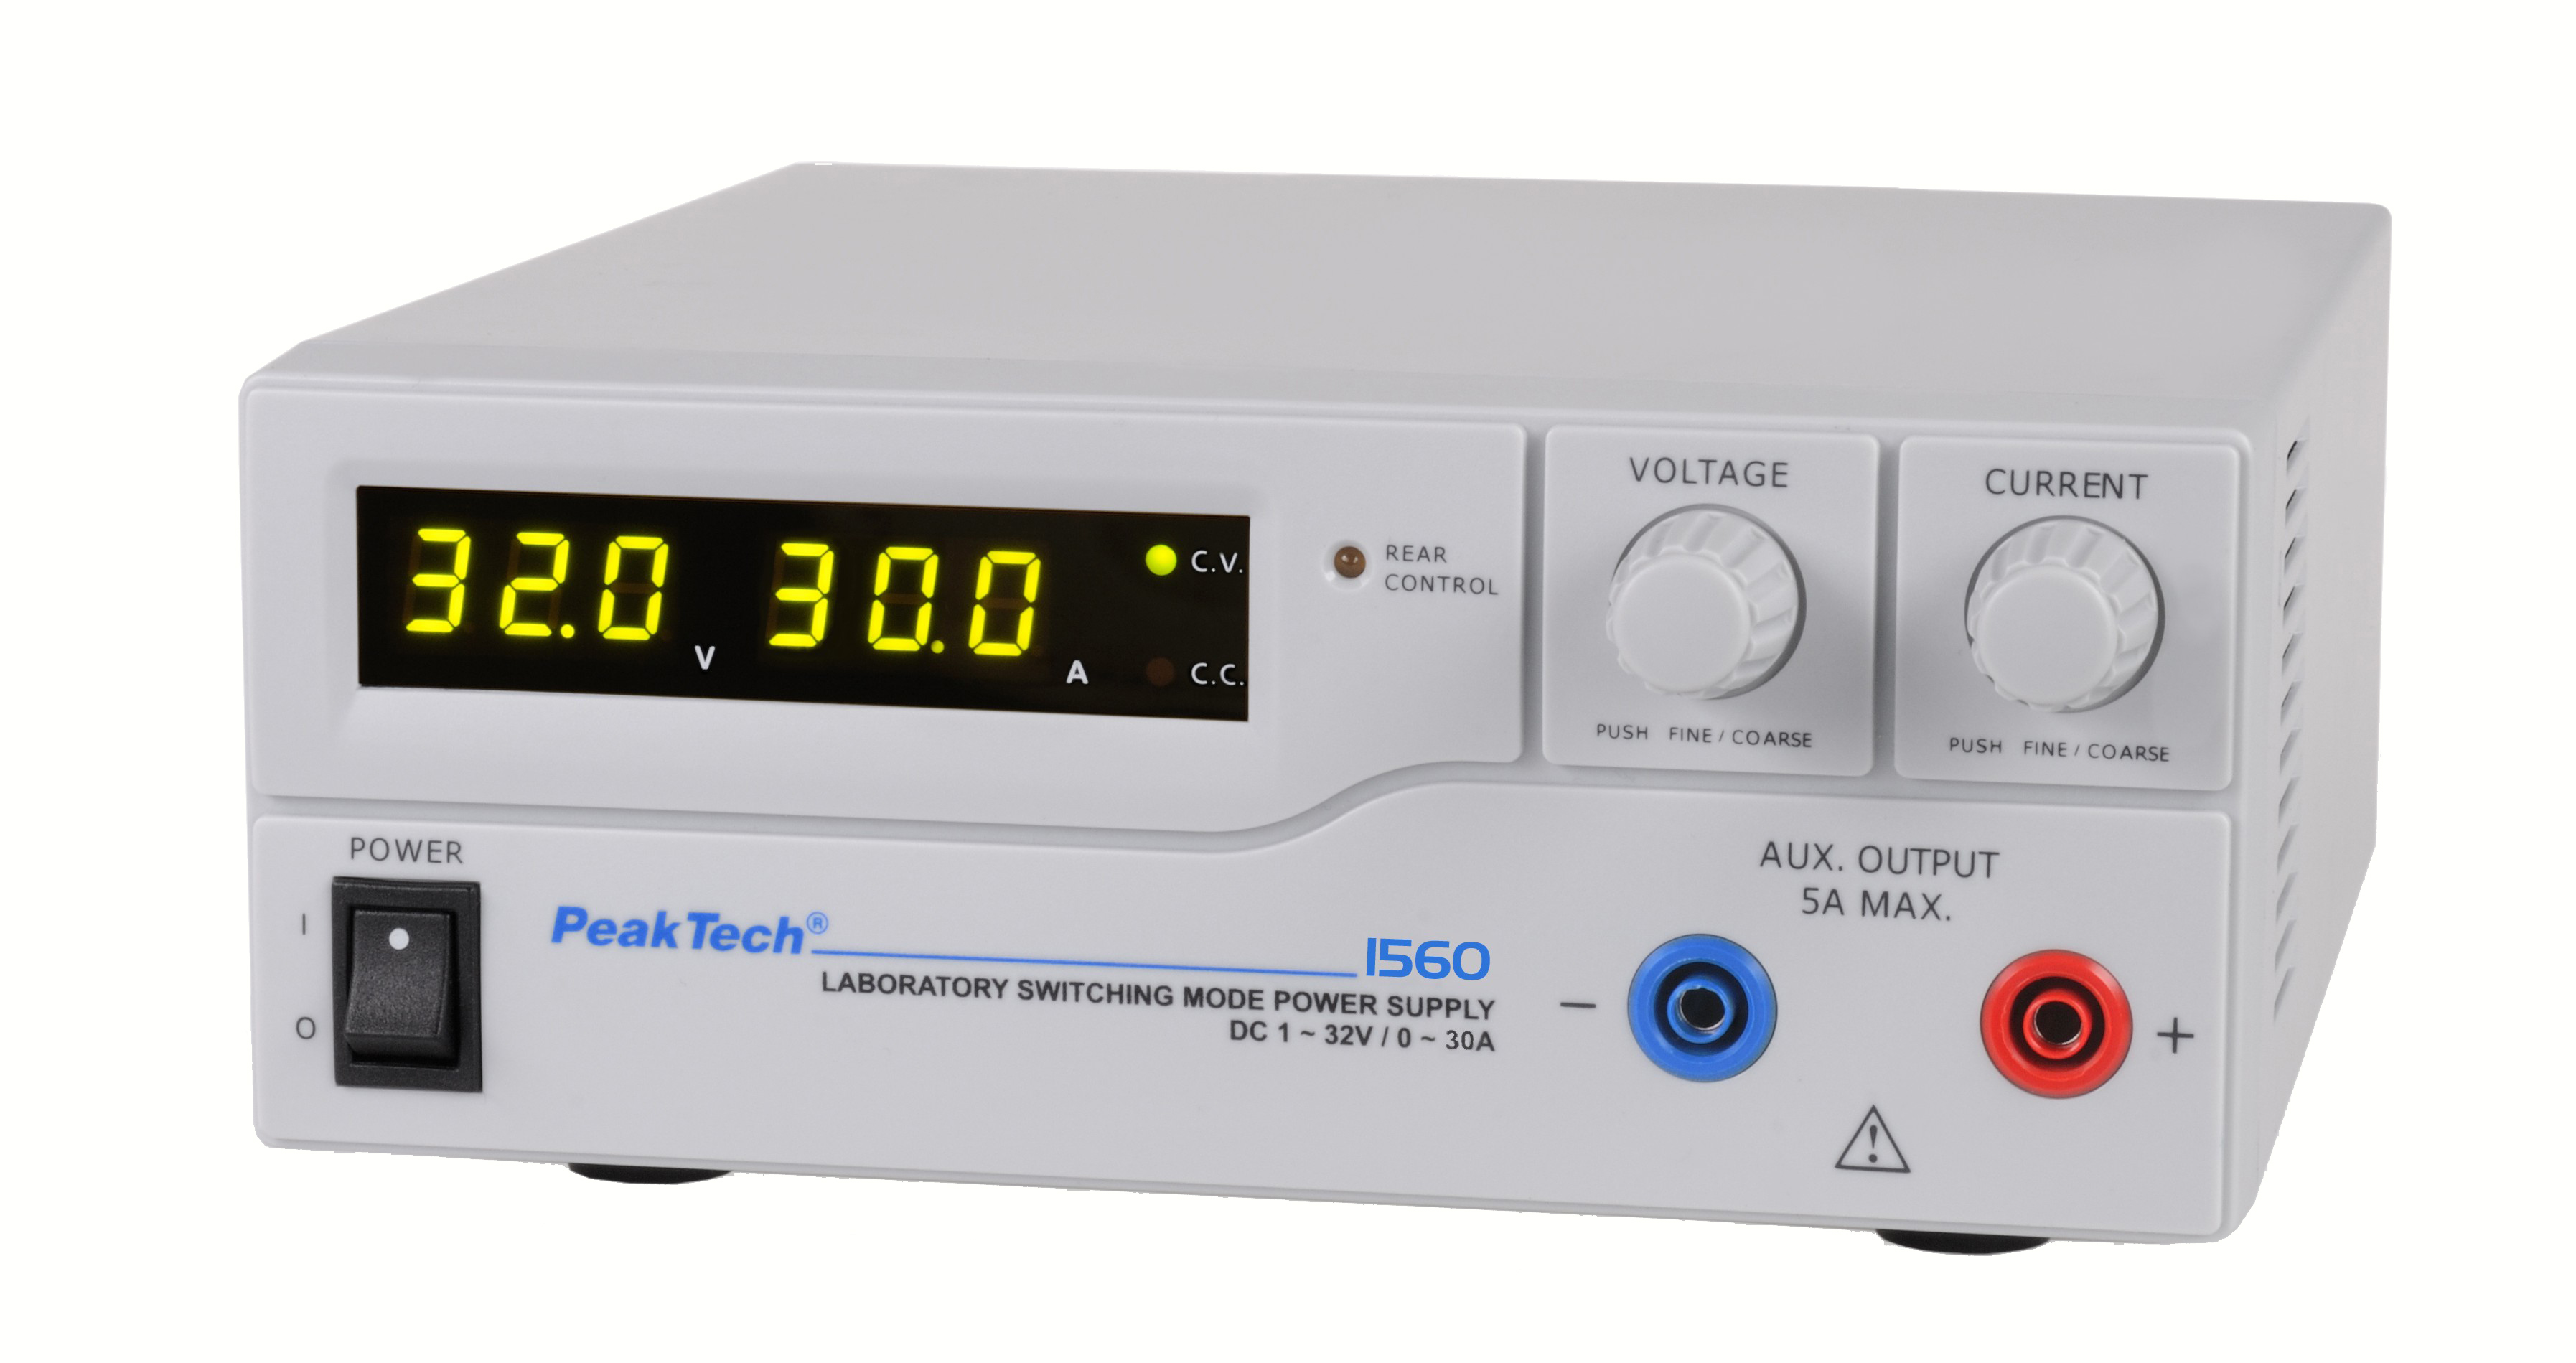 «PeakTech® P 1560» Laboratory power supply DC 1 - 32 V / 0 - 30 A